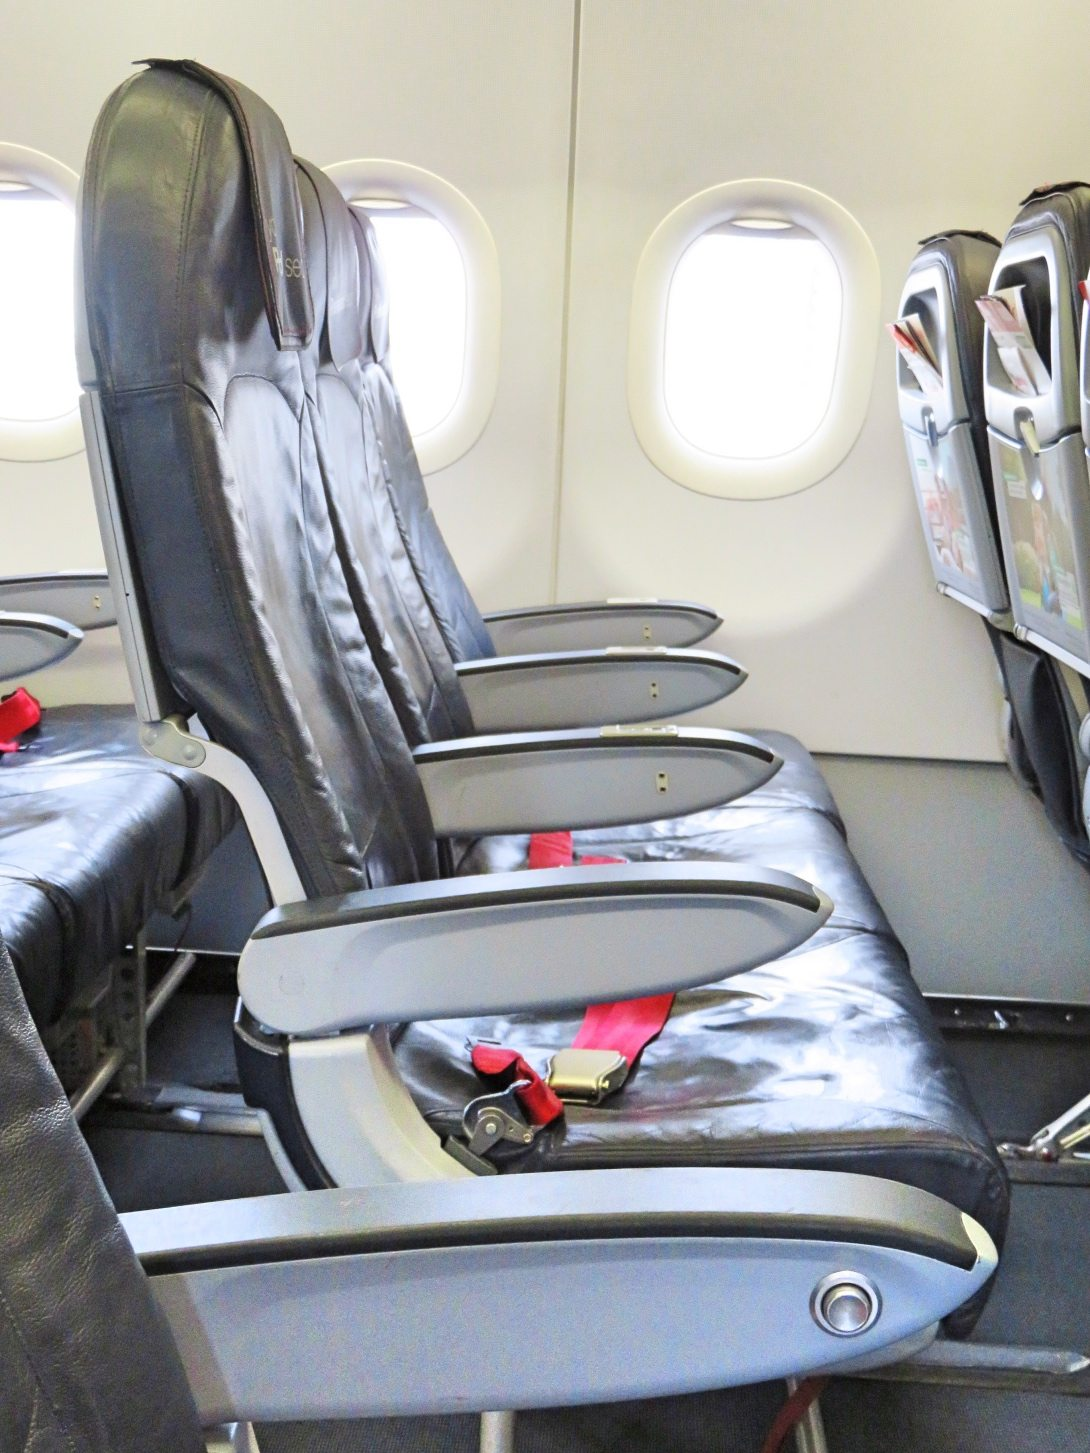 Another picture of the seats in the plane